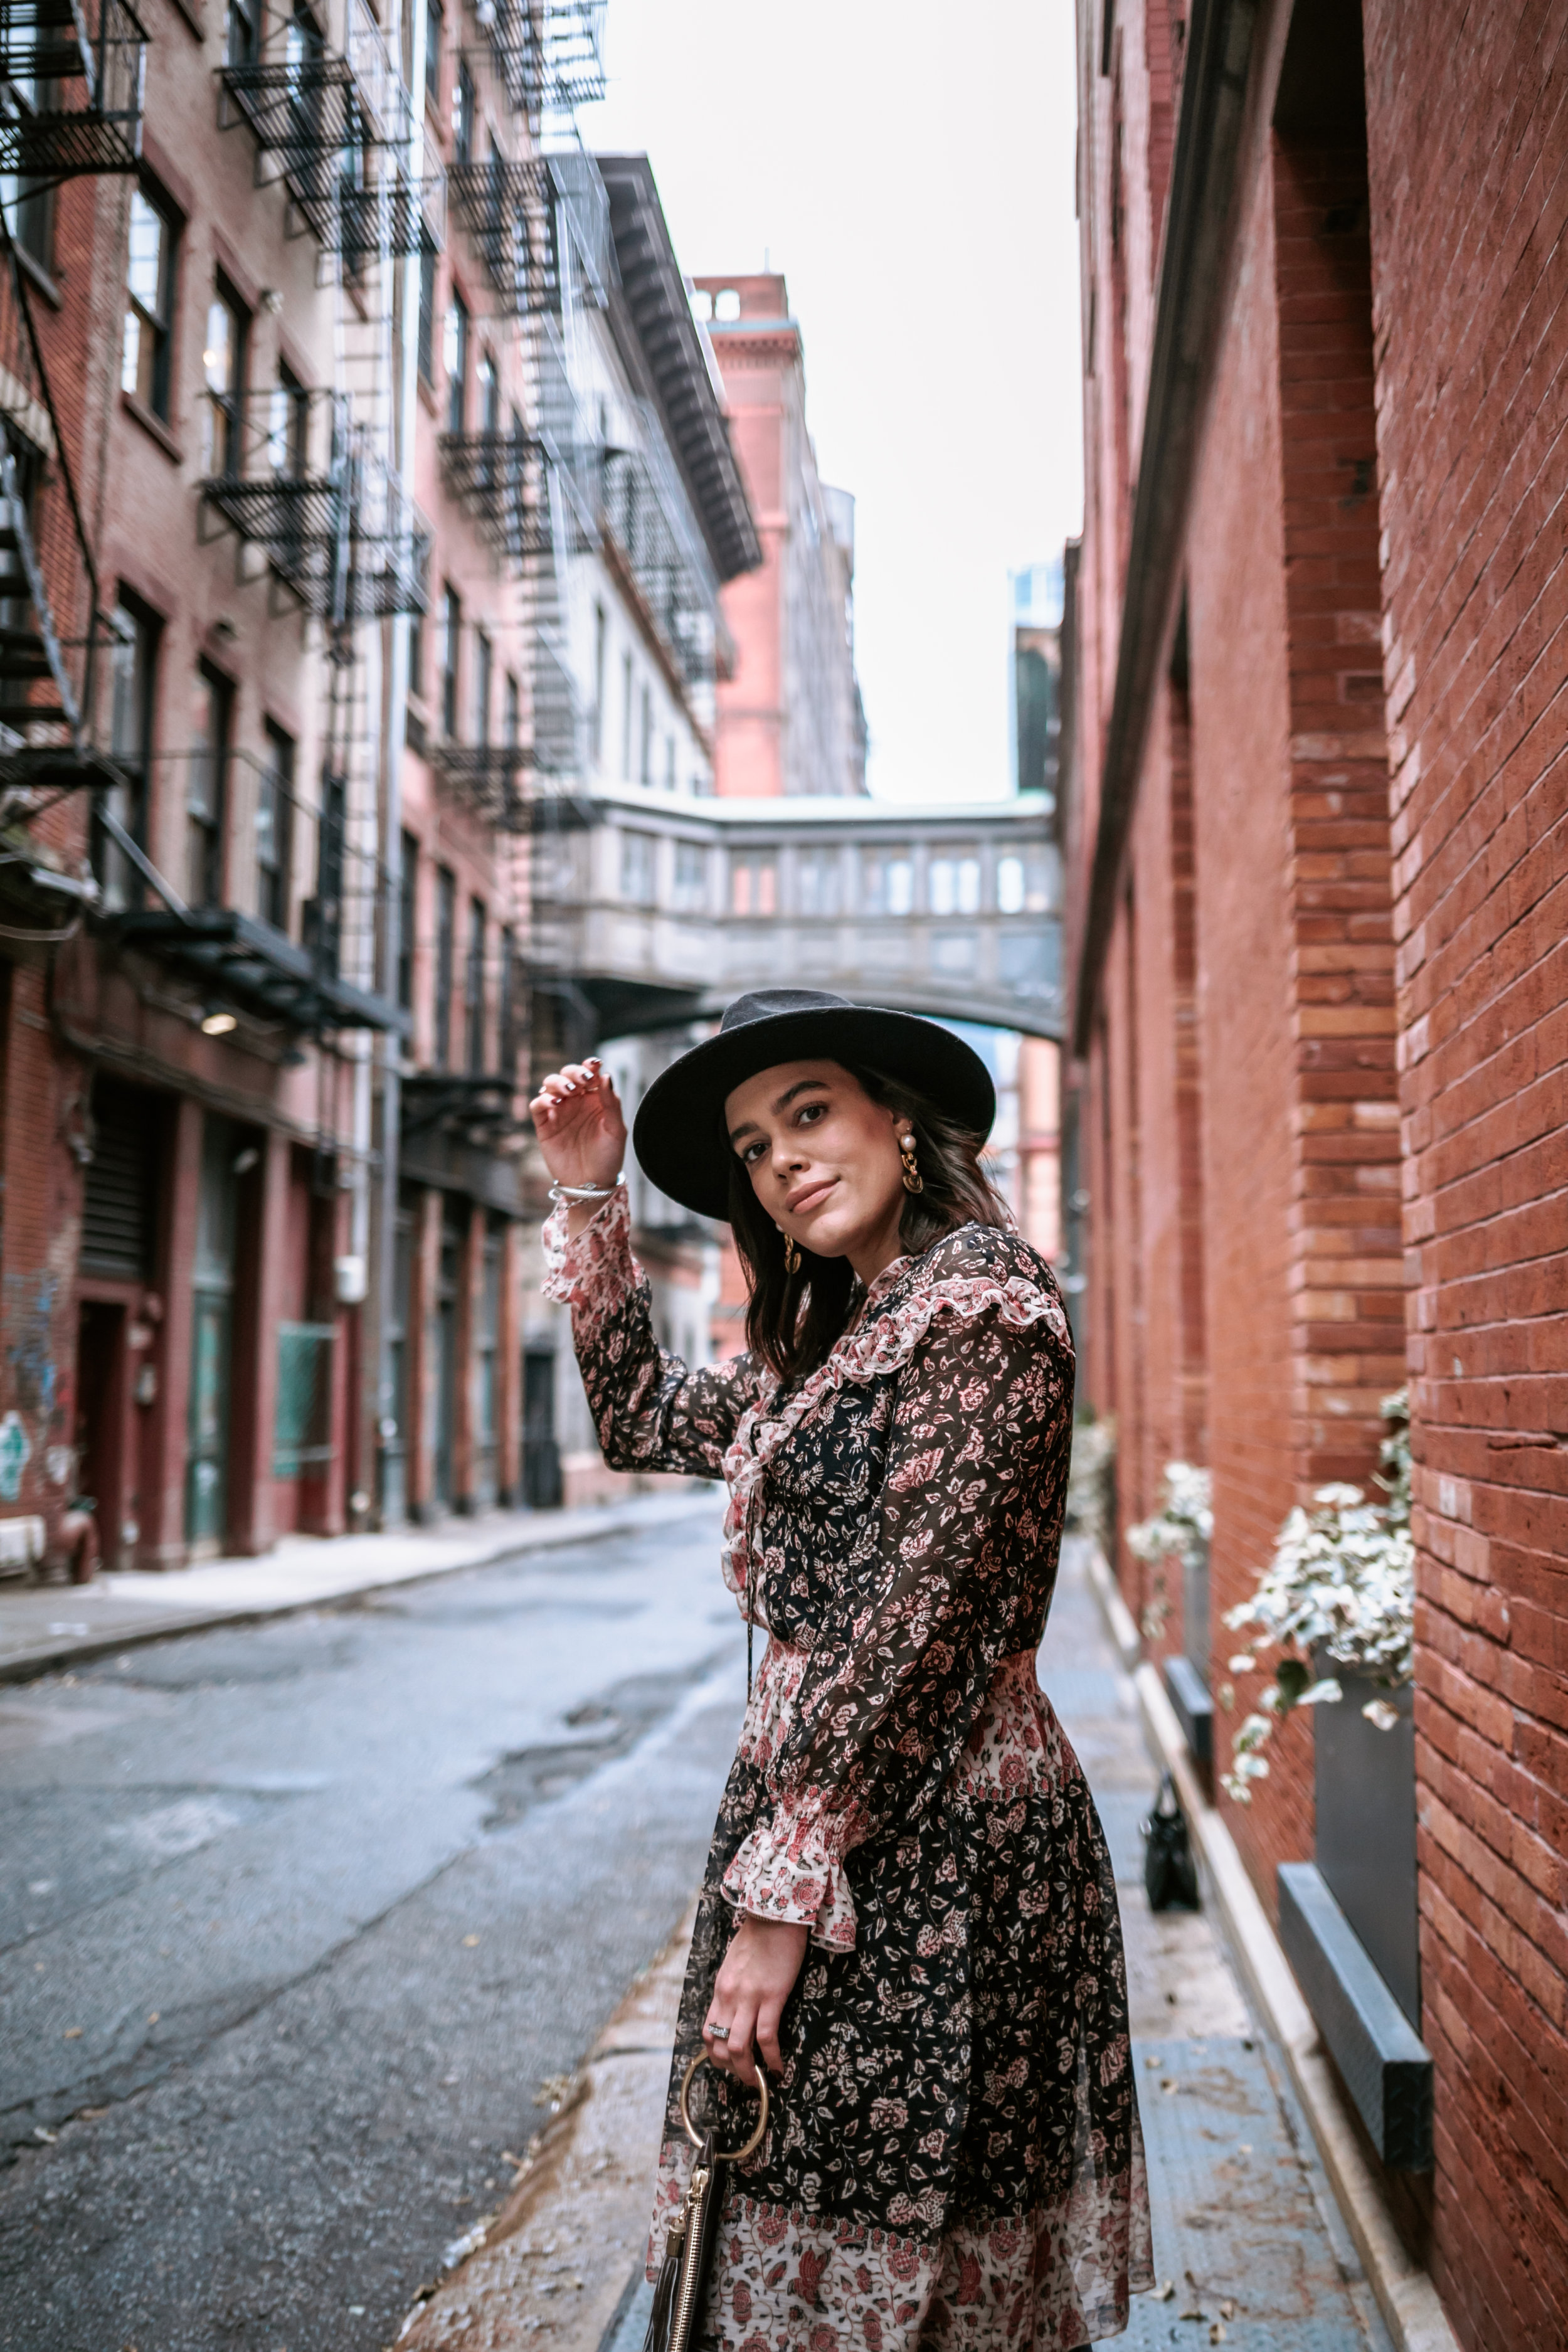 how-to-style-maxi-dresses-in-the-winter-latina-new-york-city-fashion-blogger-style-operator-winter-fashion.jpg